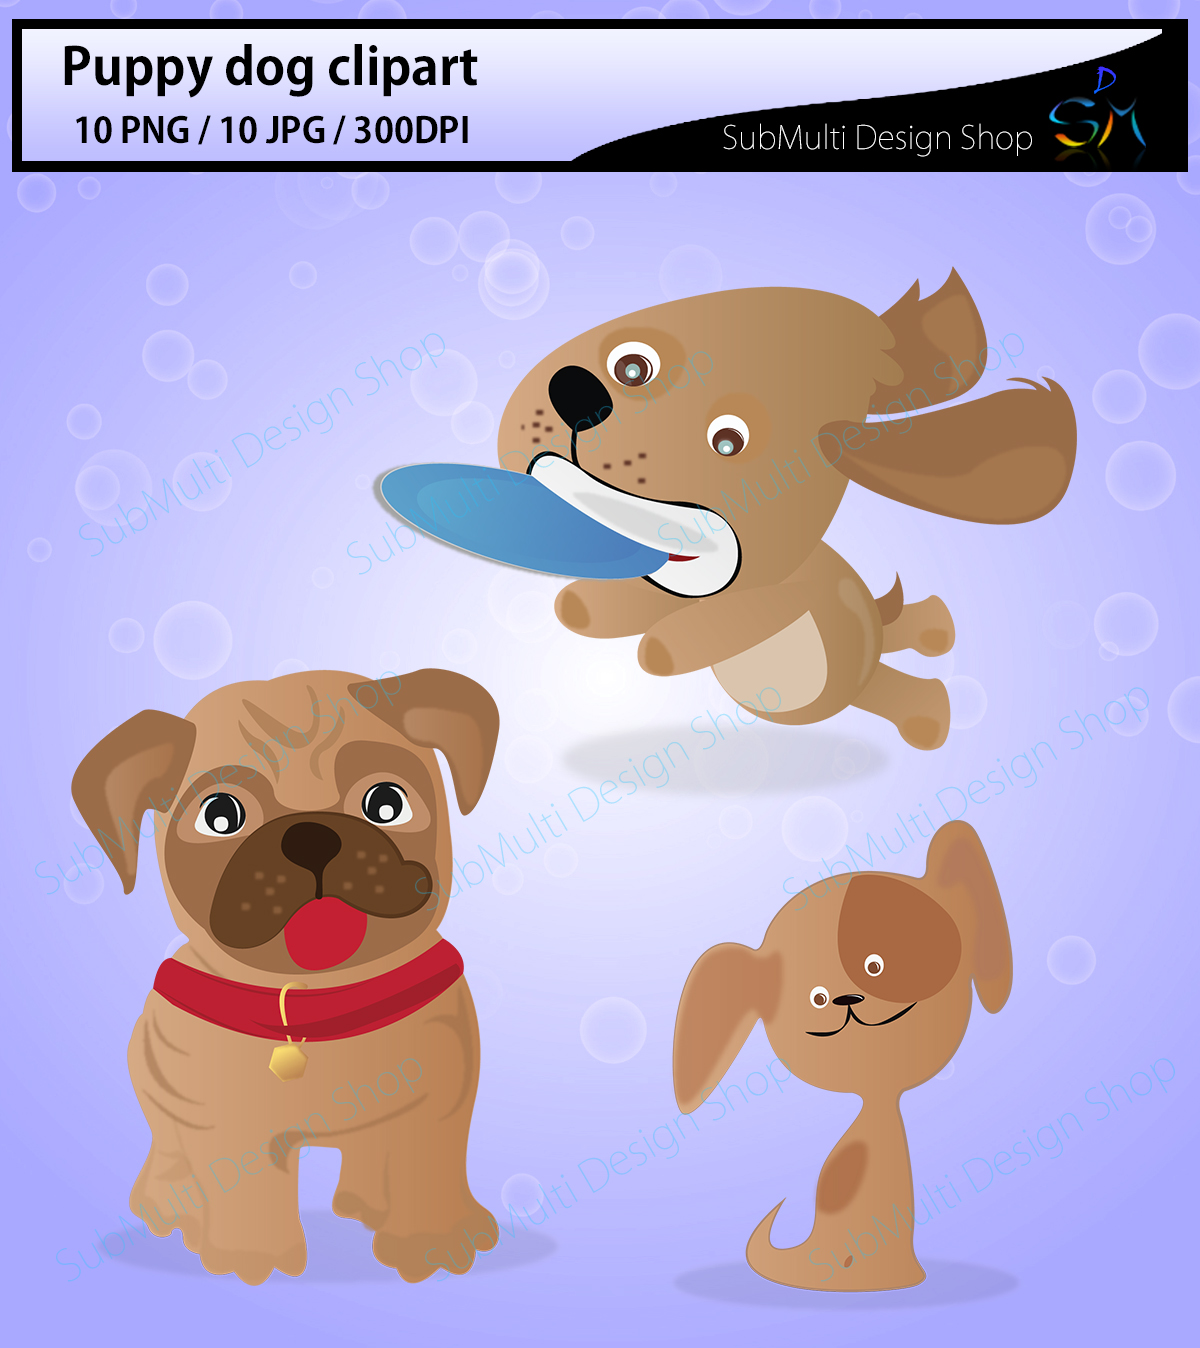 puppy dog clipart / Digital Clip Art for Scrapbooking Card Making Cupcake Toppers Paper Crafts / doodle dogs / puppy doodles / cute dogs example image 3